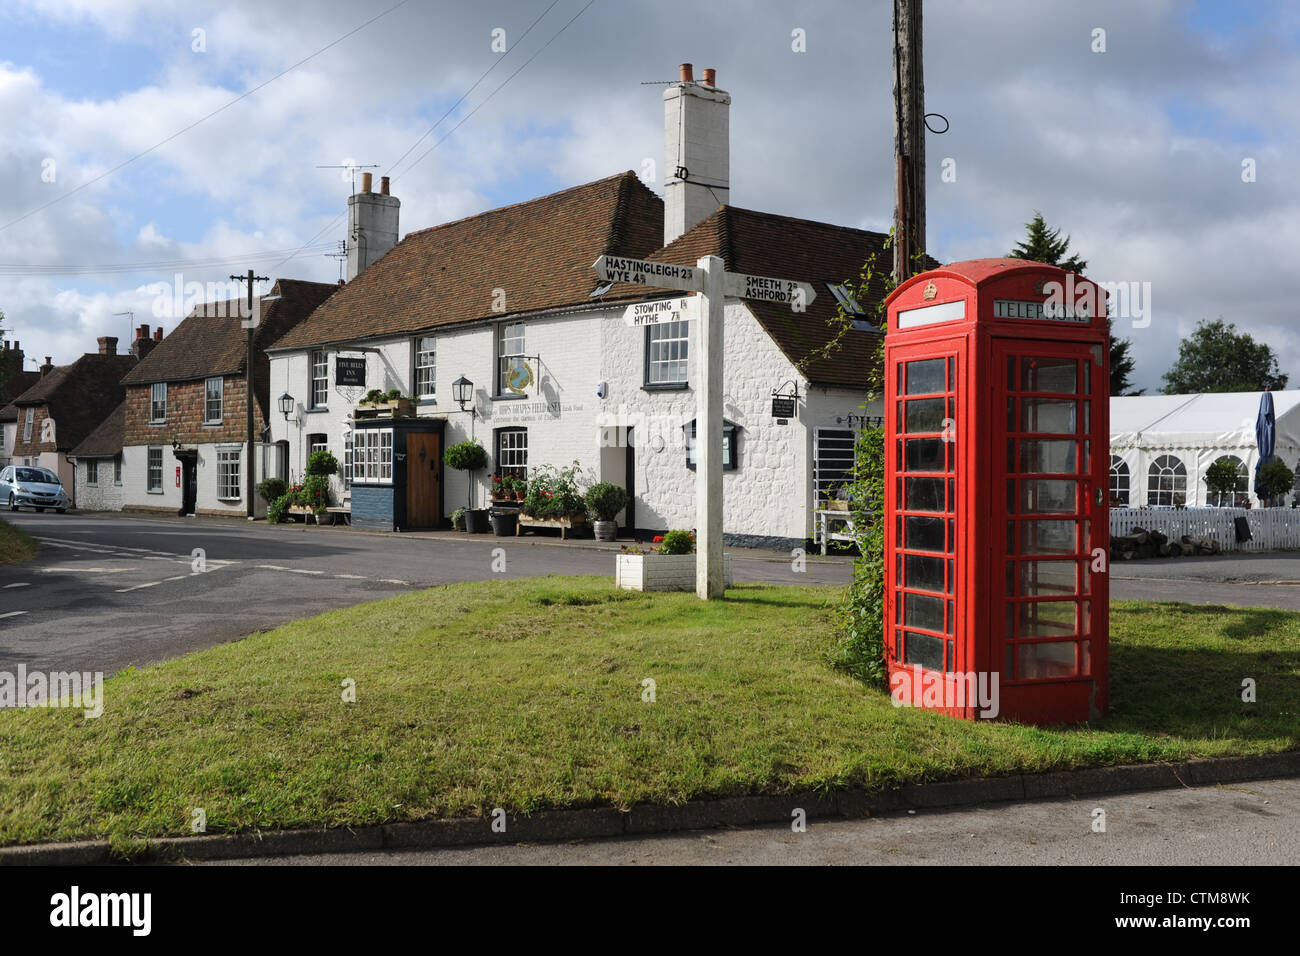 The Five Bells Inn traditional English pub at Rabourne village in Kent UK with old fashioned red telephone box - Stock Image